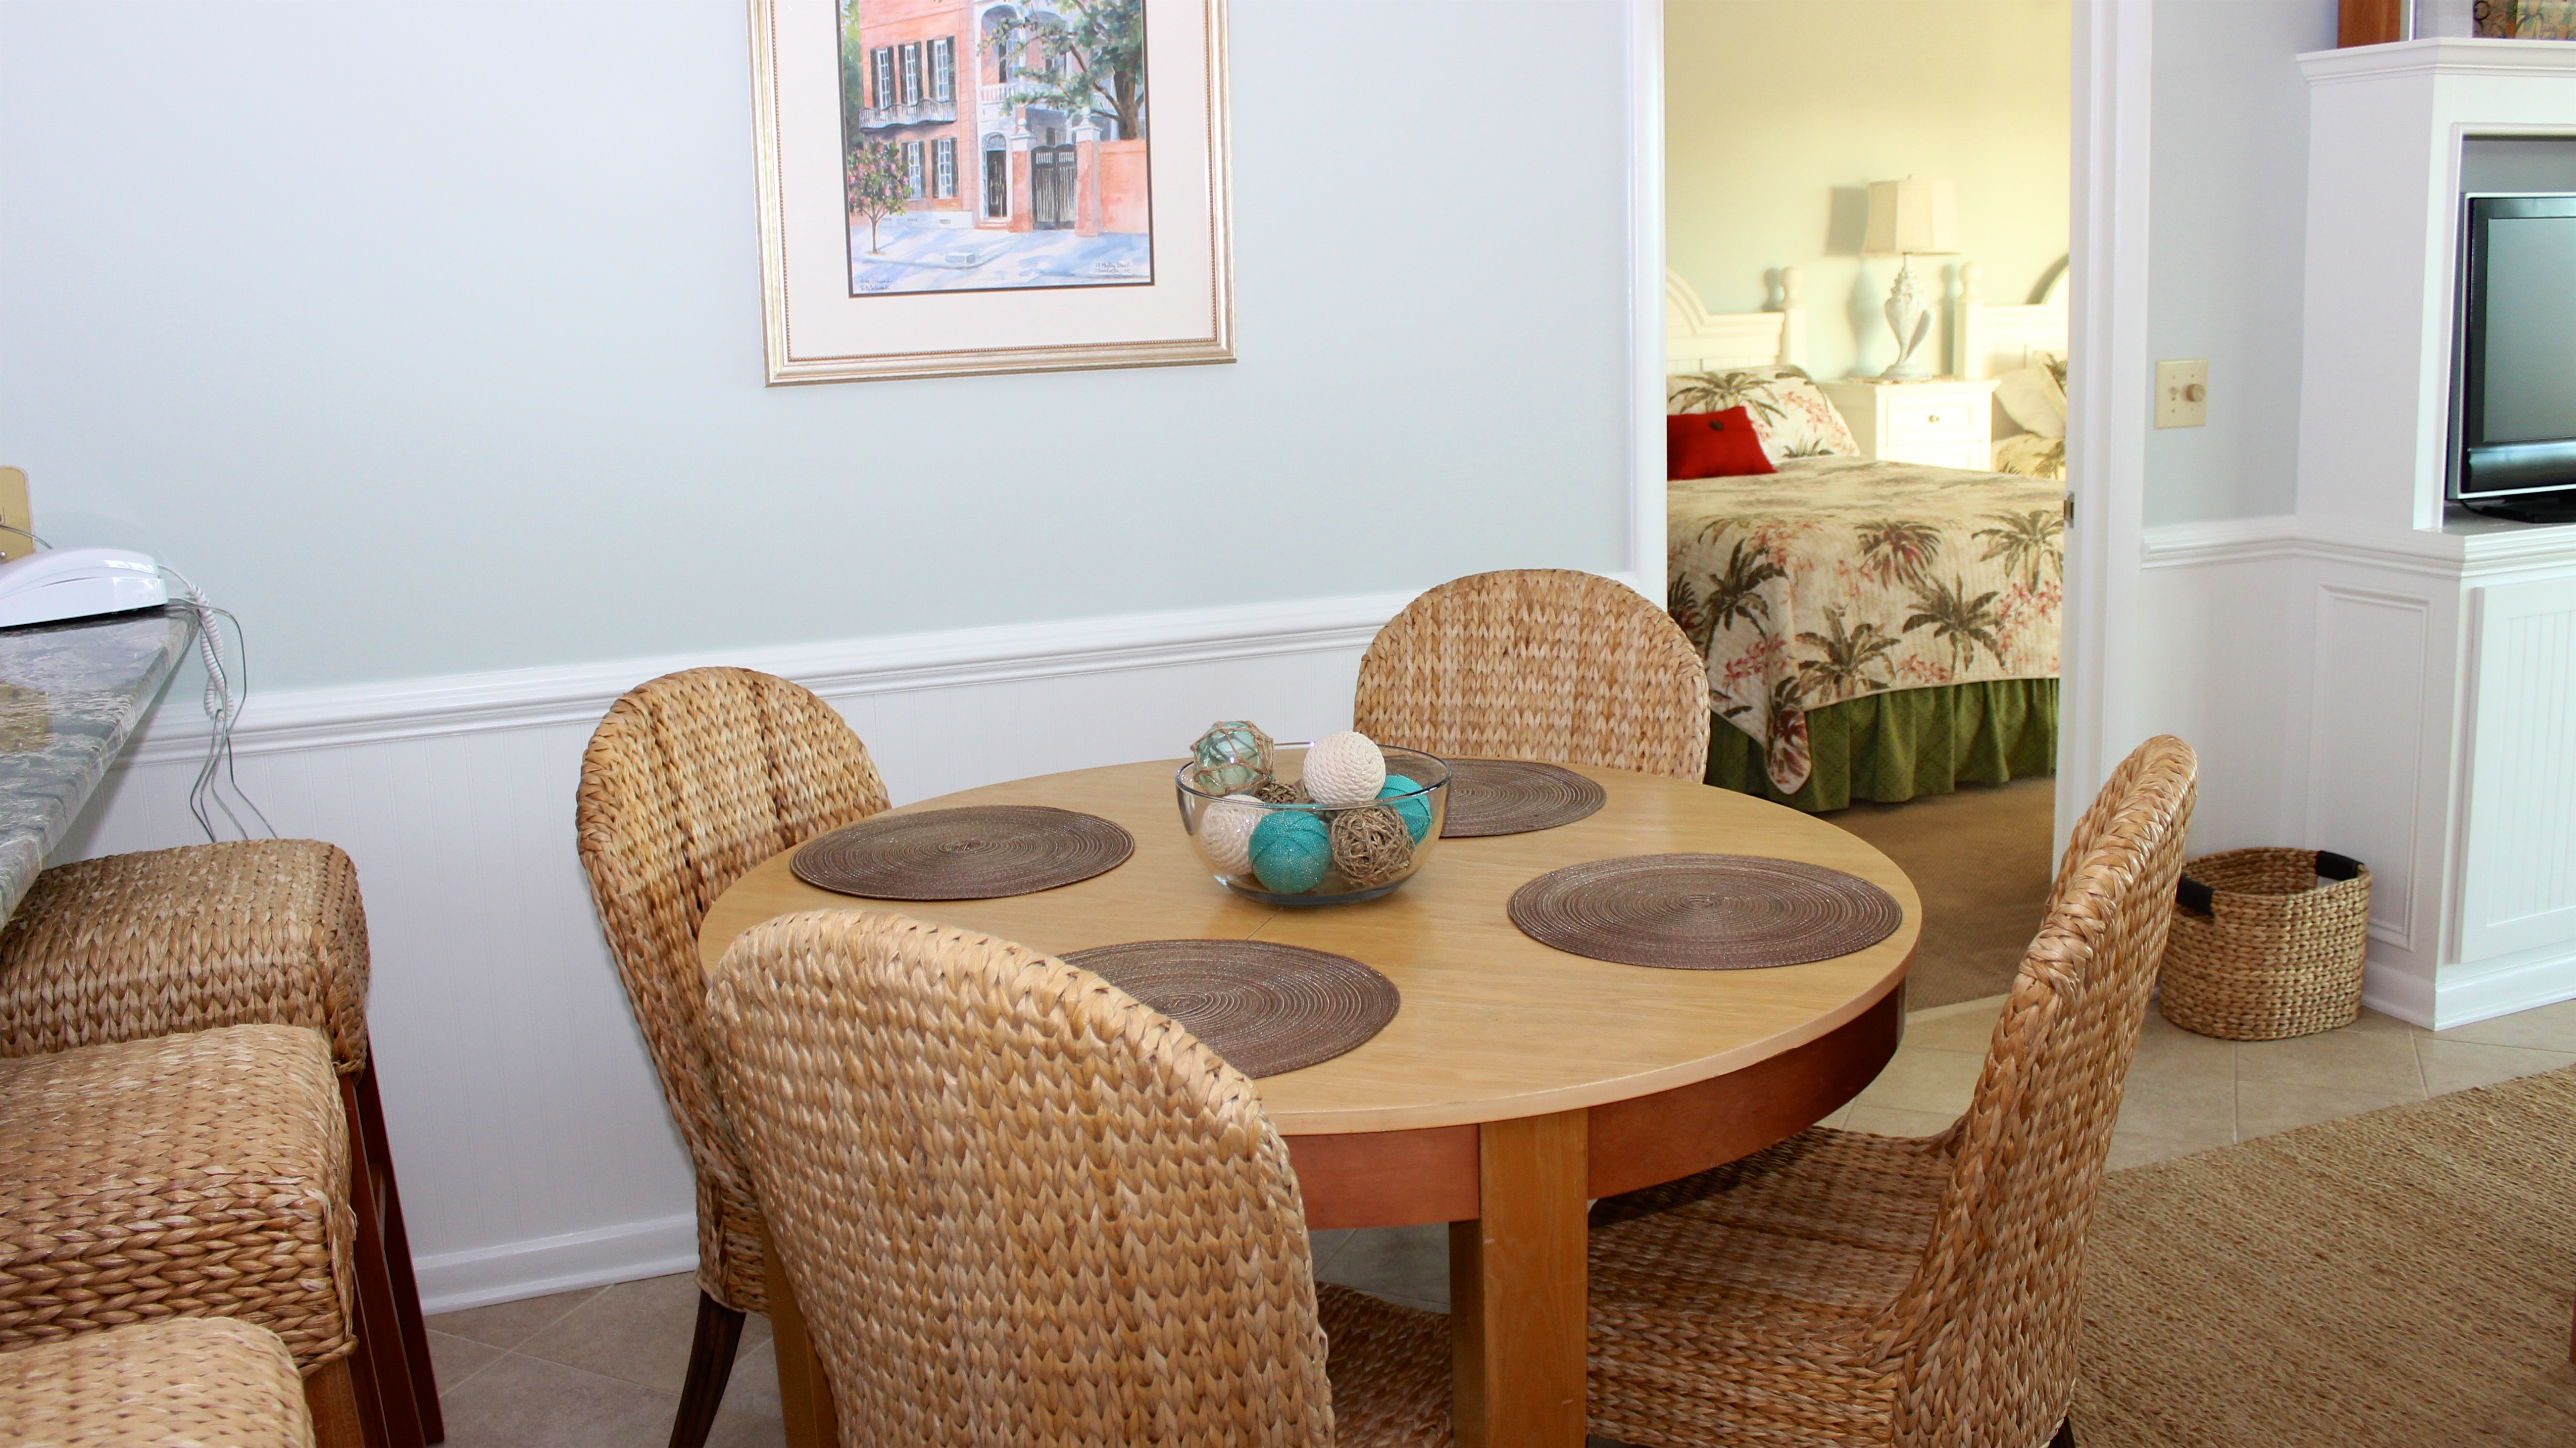 Share stories from your day while dining around the table for four.